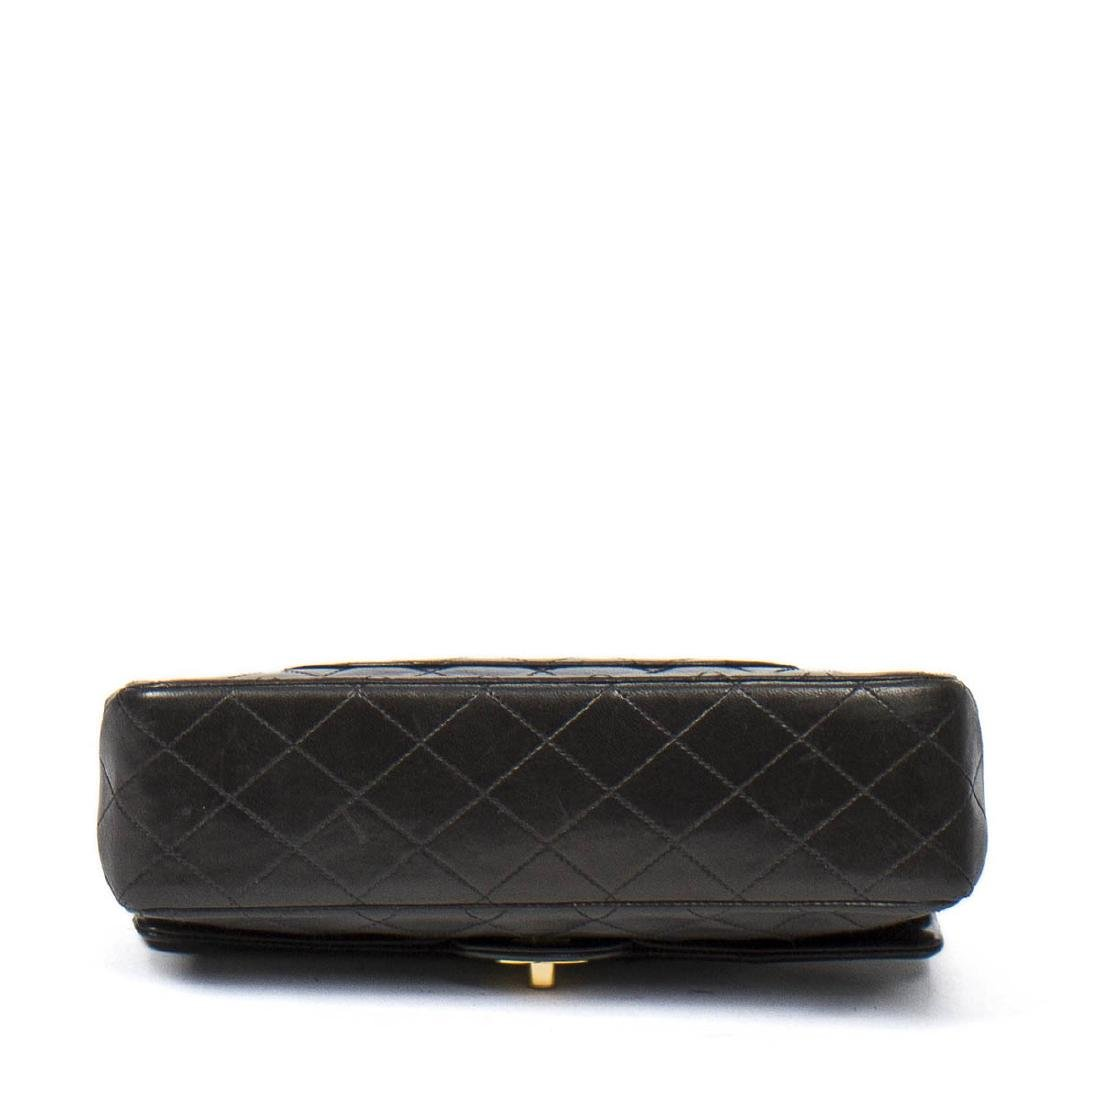 Chanel Classic Double Flap 26 in Black Quilted Leather - 6